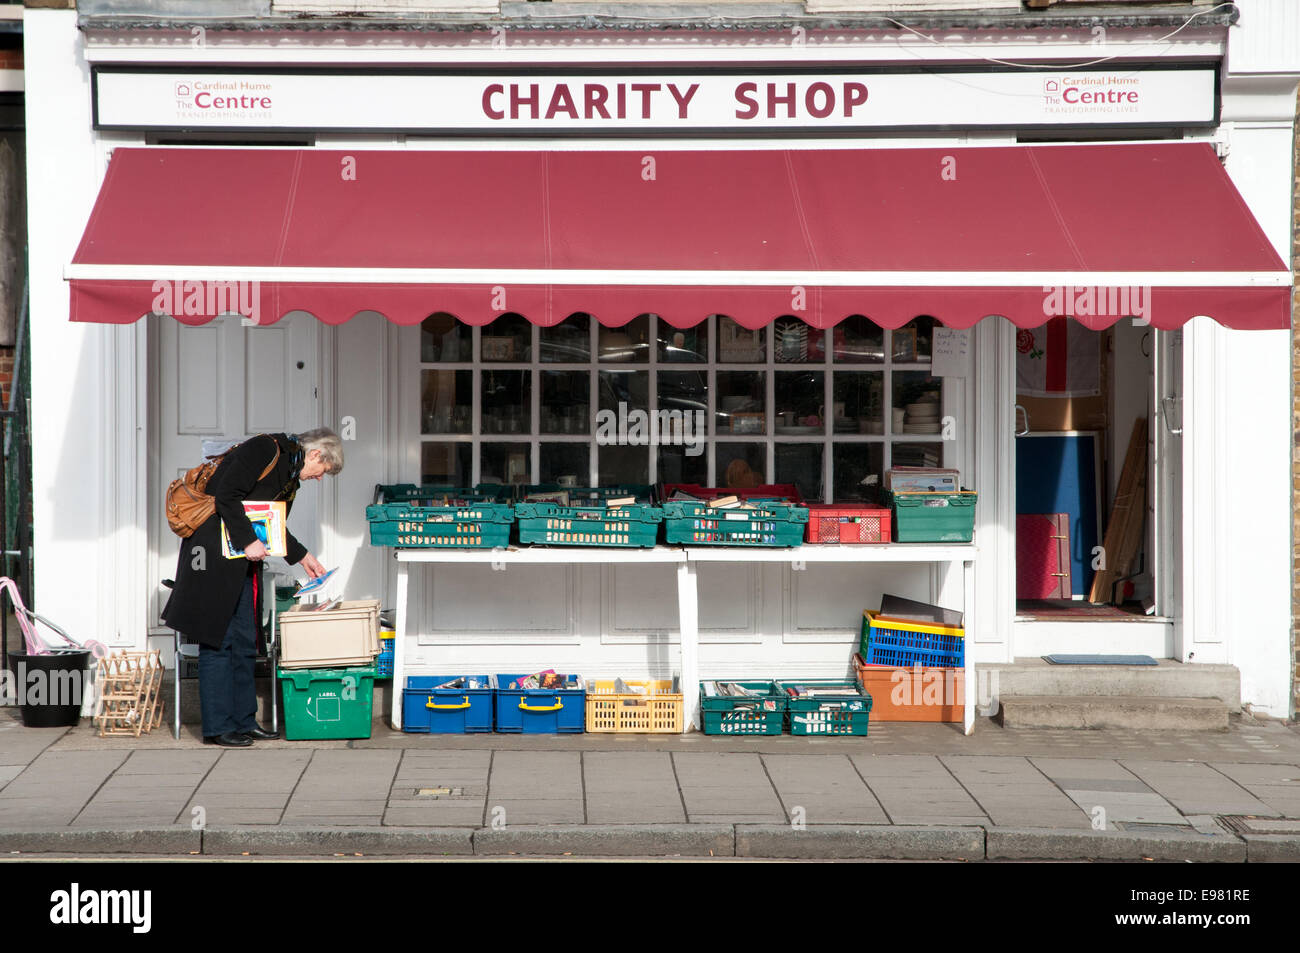 Woman browsing in a charity Shop, London, England, UK - Stock Image